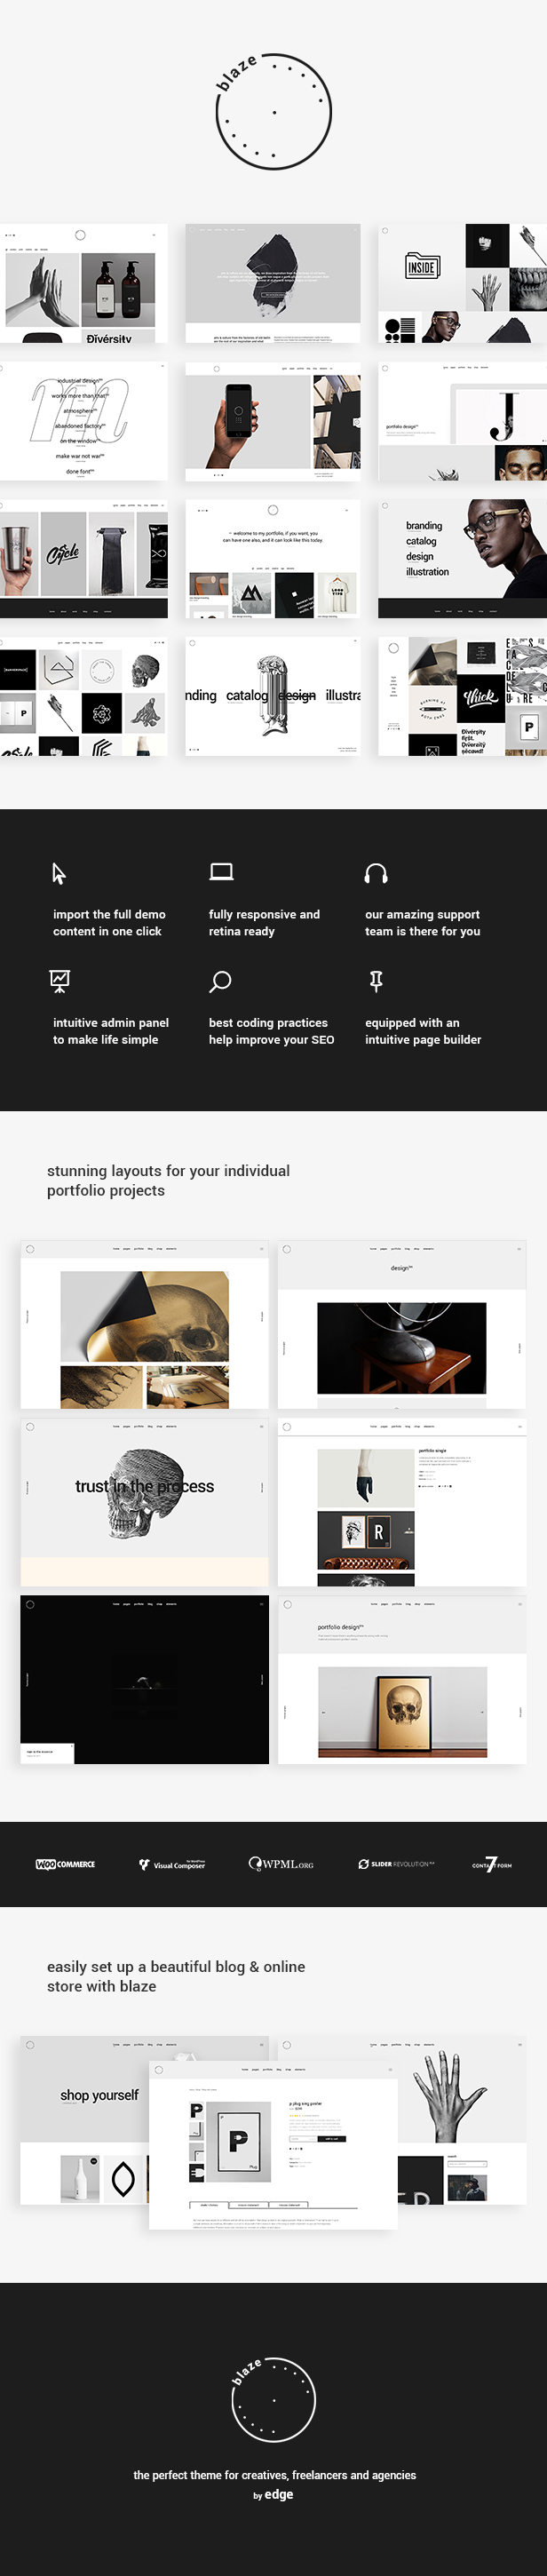 WordPress theme Blaze - A Portfolio Theme with Attitude (Portfolio)